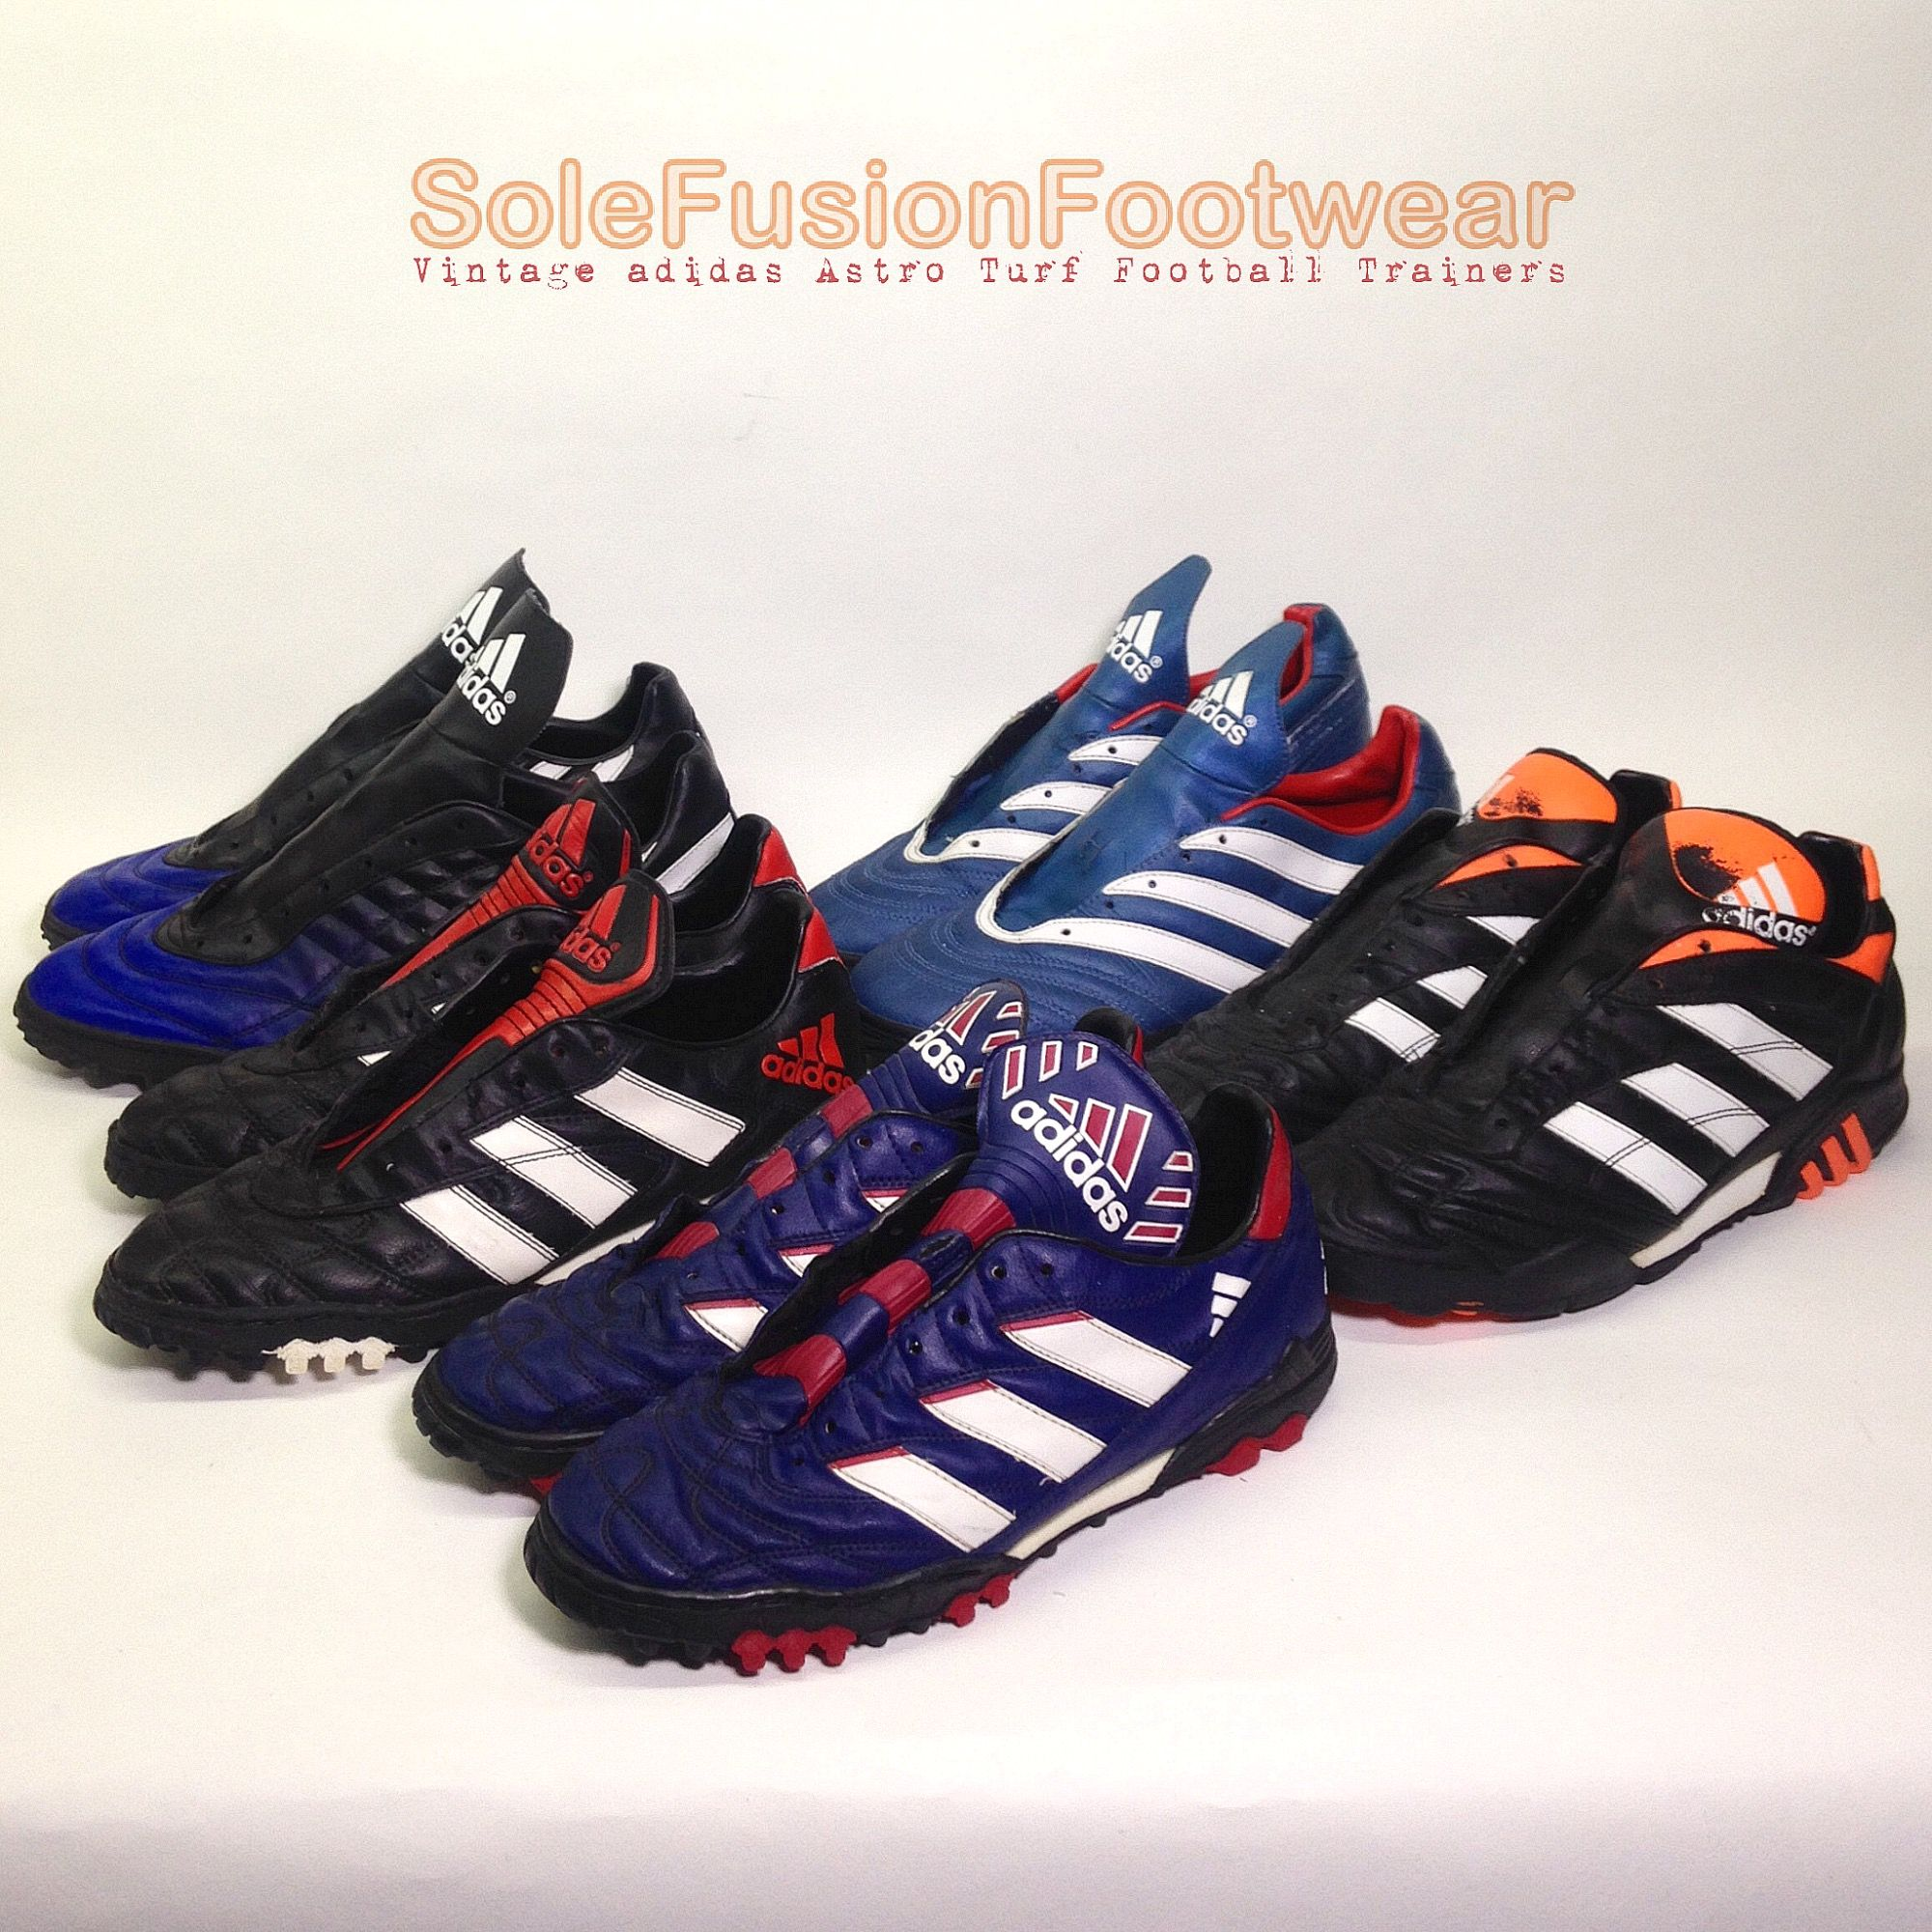 Vintage Adidas Trx Turf Football Shoes Cleaned Drying Out And